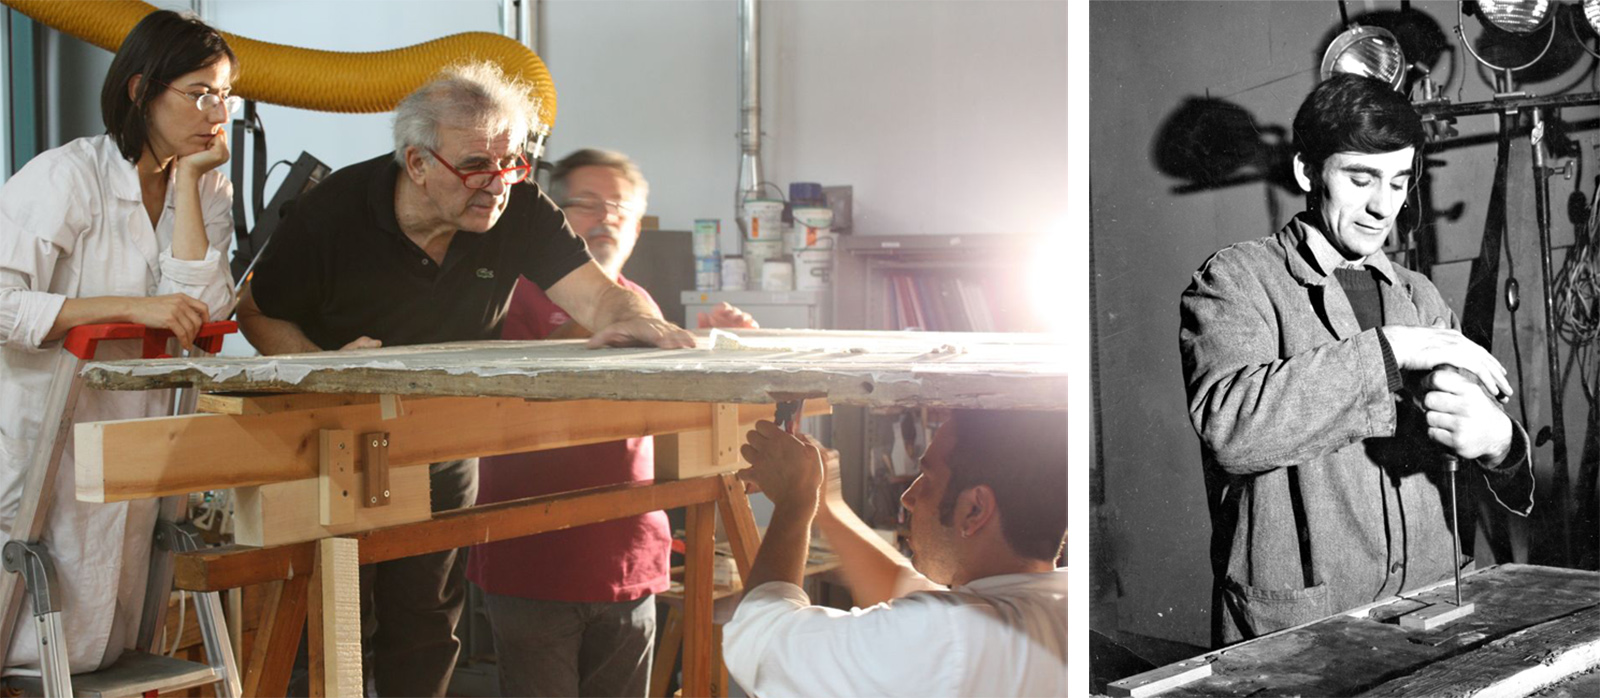 Left: Trainer guides trainees in treatment of wood panel painting. Right: Same trainer in 1966 working to remove crosspieces of a wood panel painting.